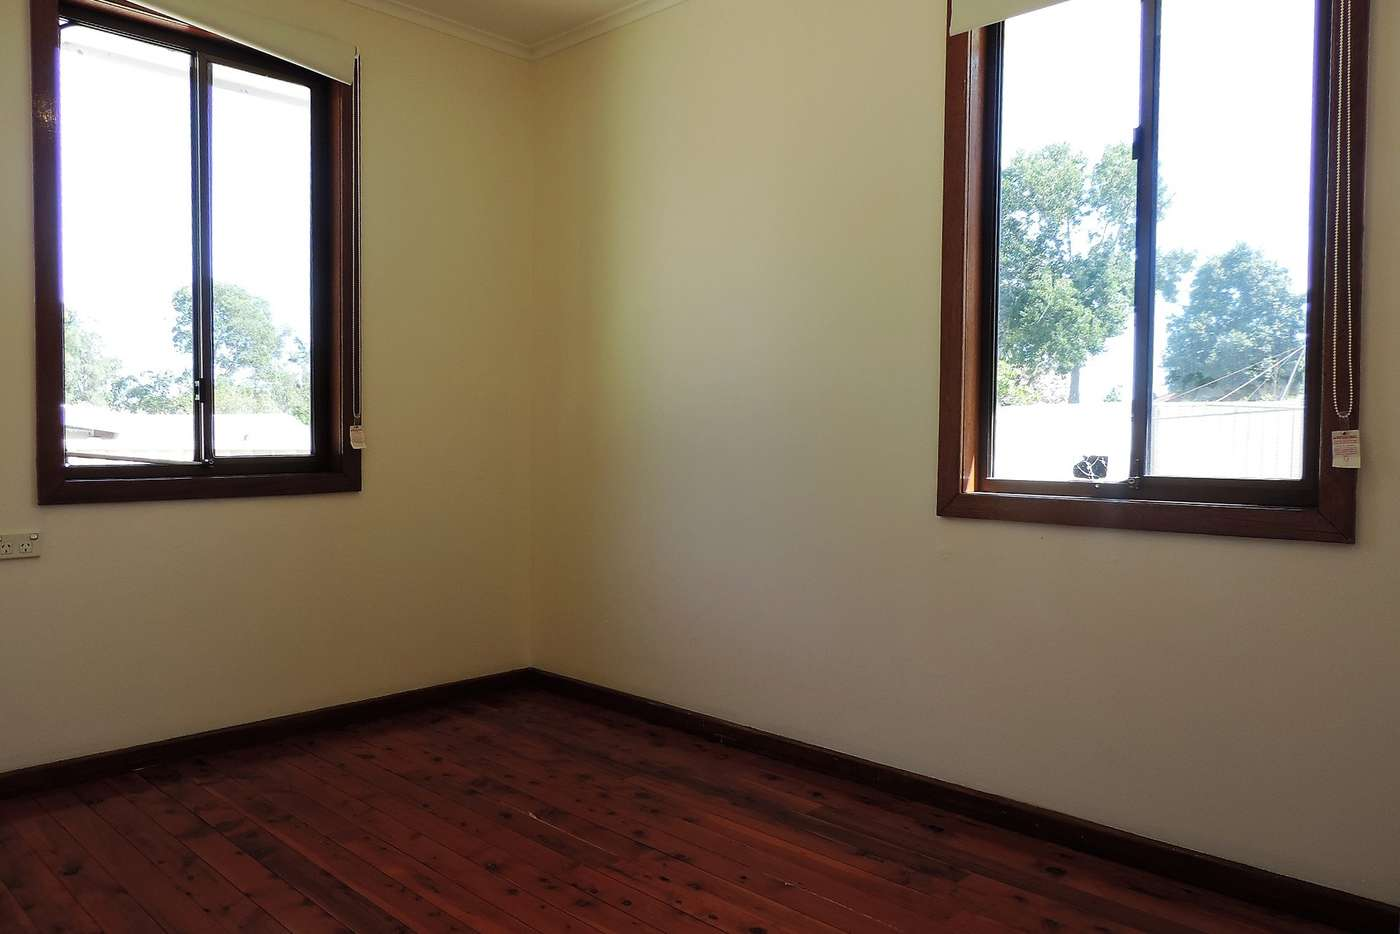 Seventh view of Homely house listing, 4 Blain Street, Toongabbie NSW 2146